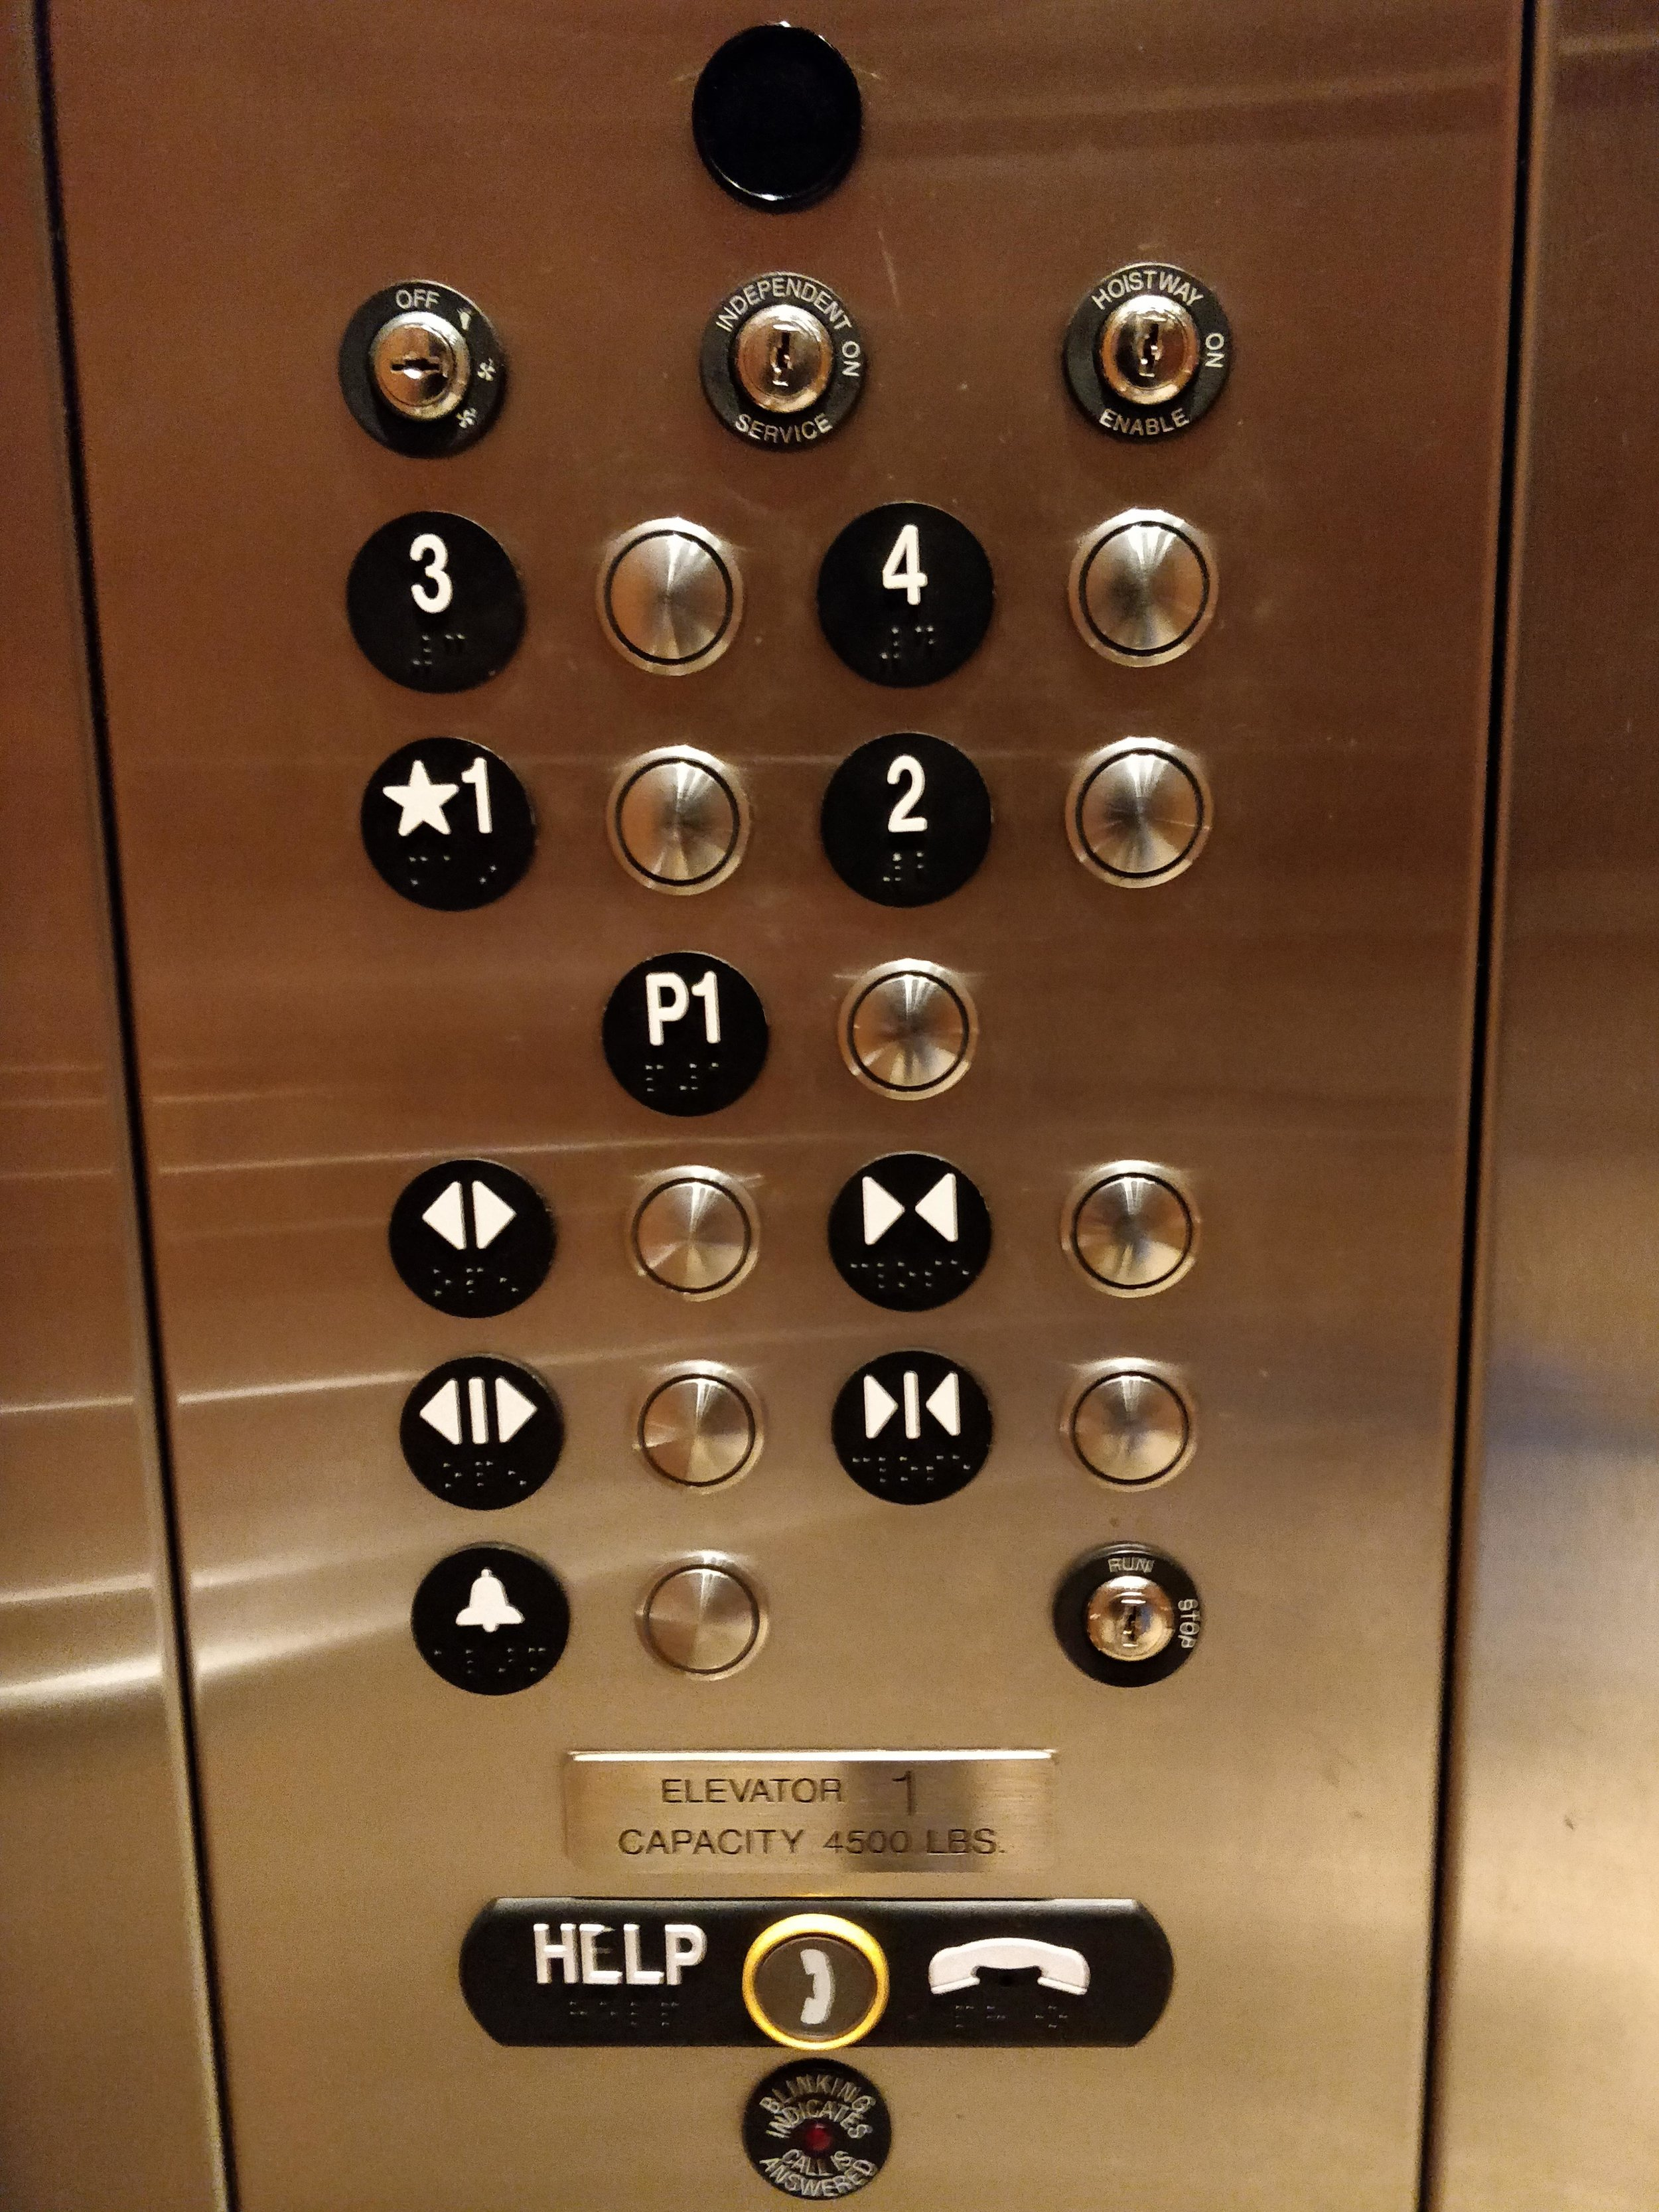 Image 6. Buttons in elevator 3